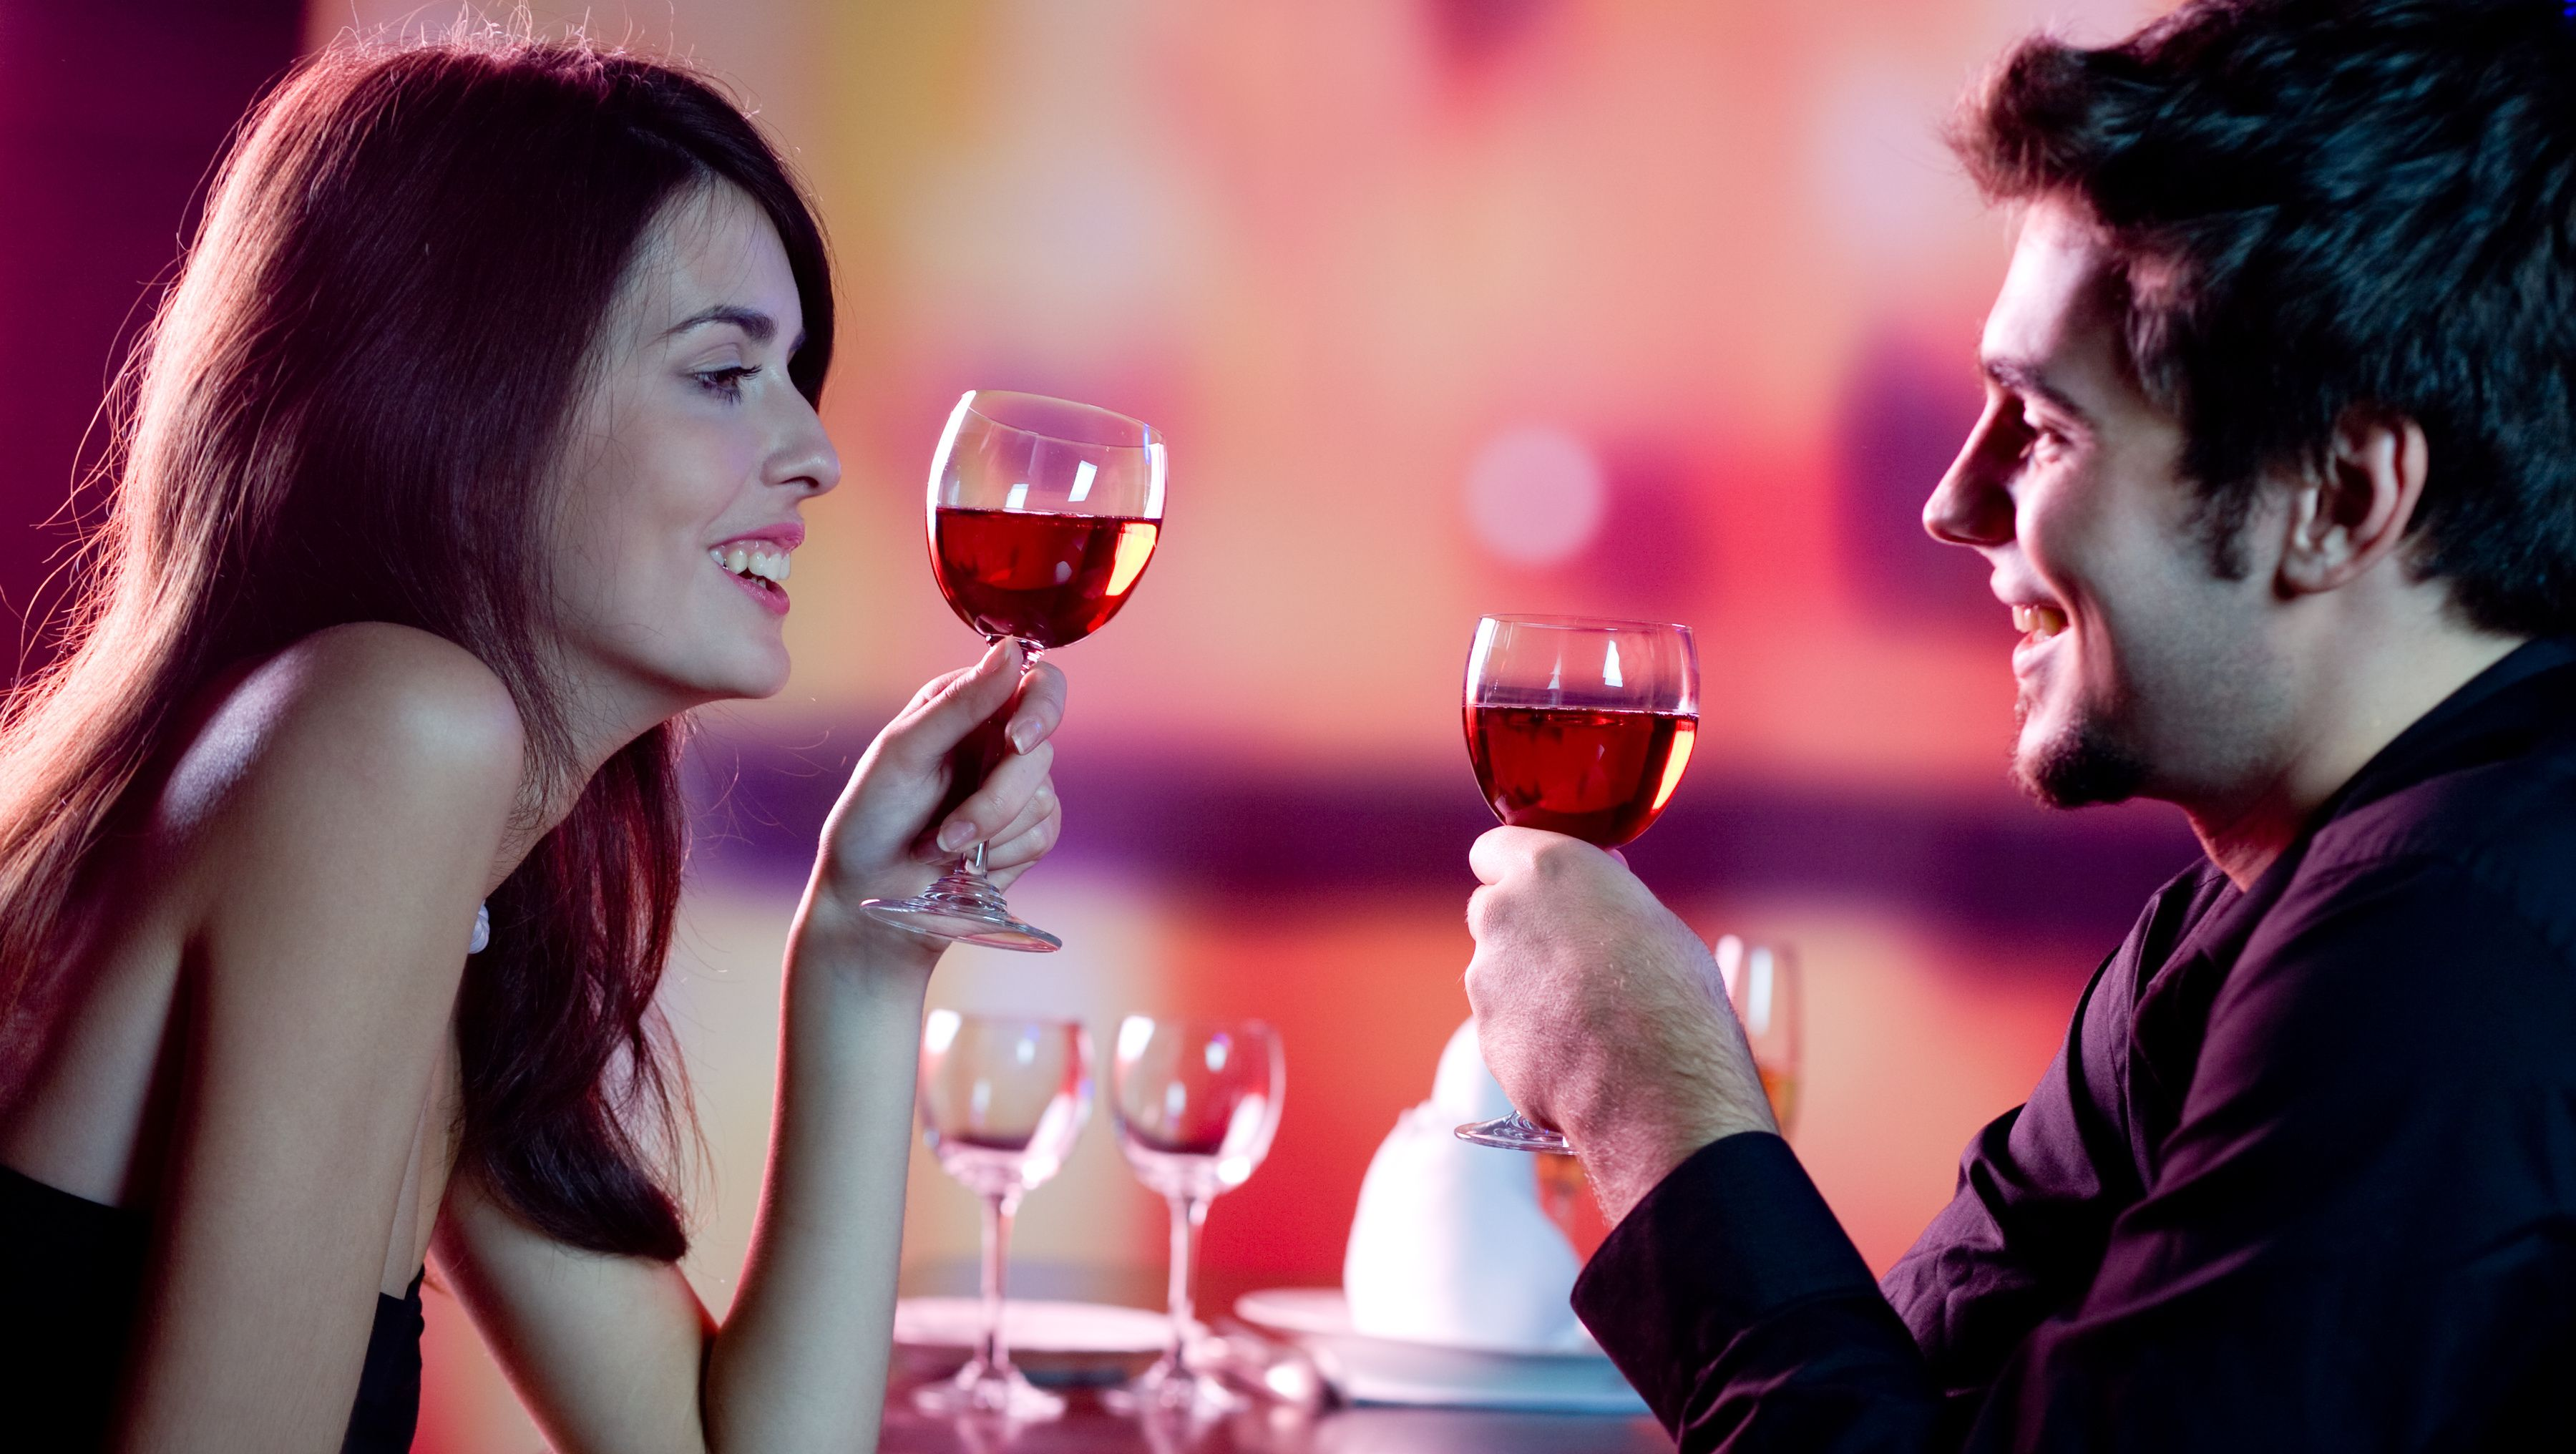 dating Sign up for free and  start a conversation with like-minded individuals today.